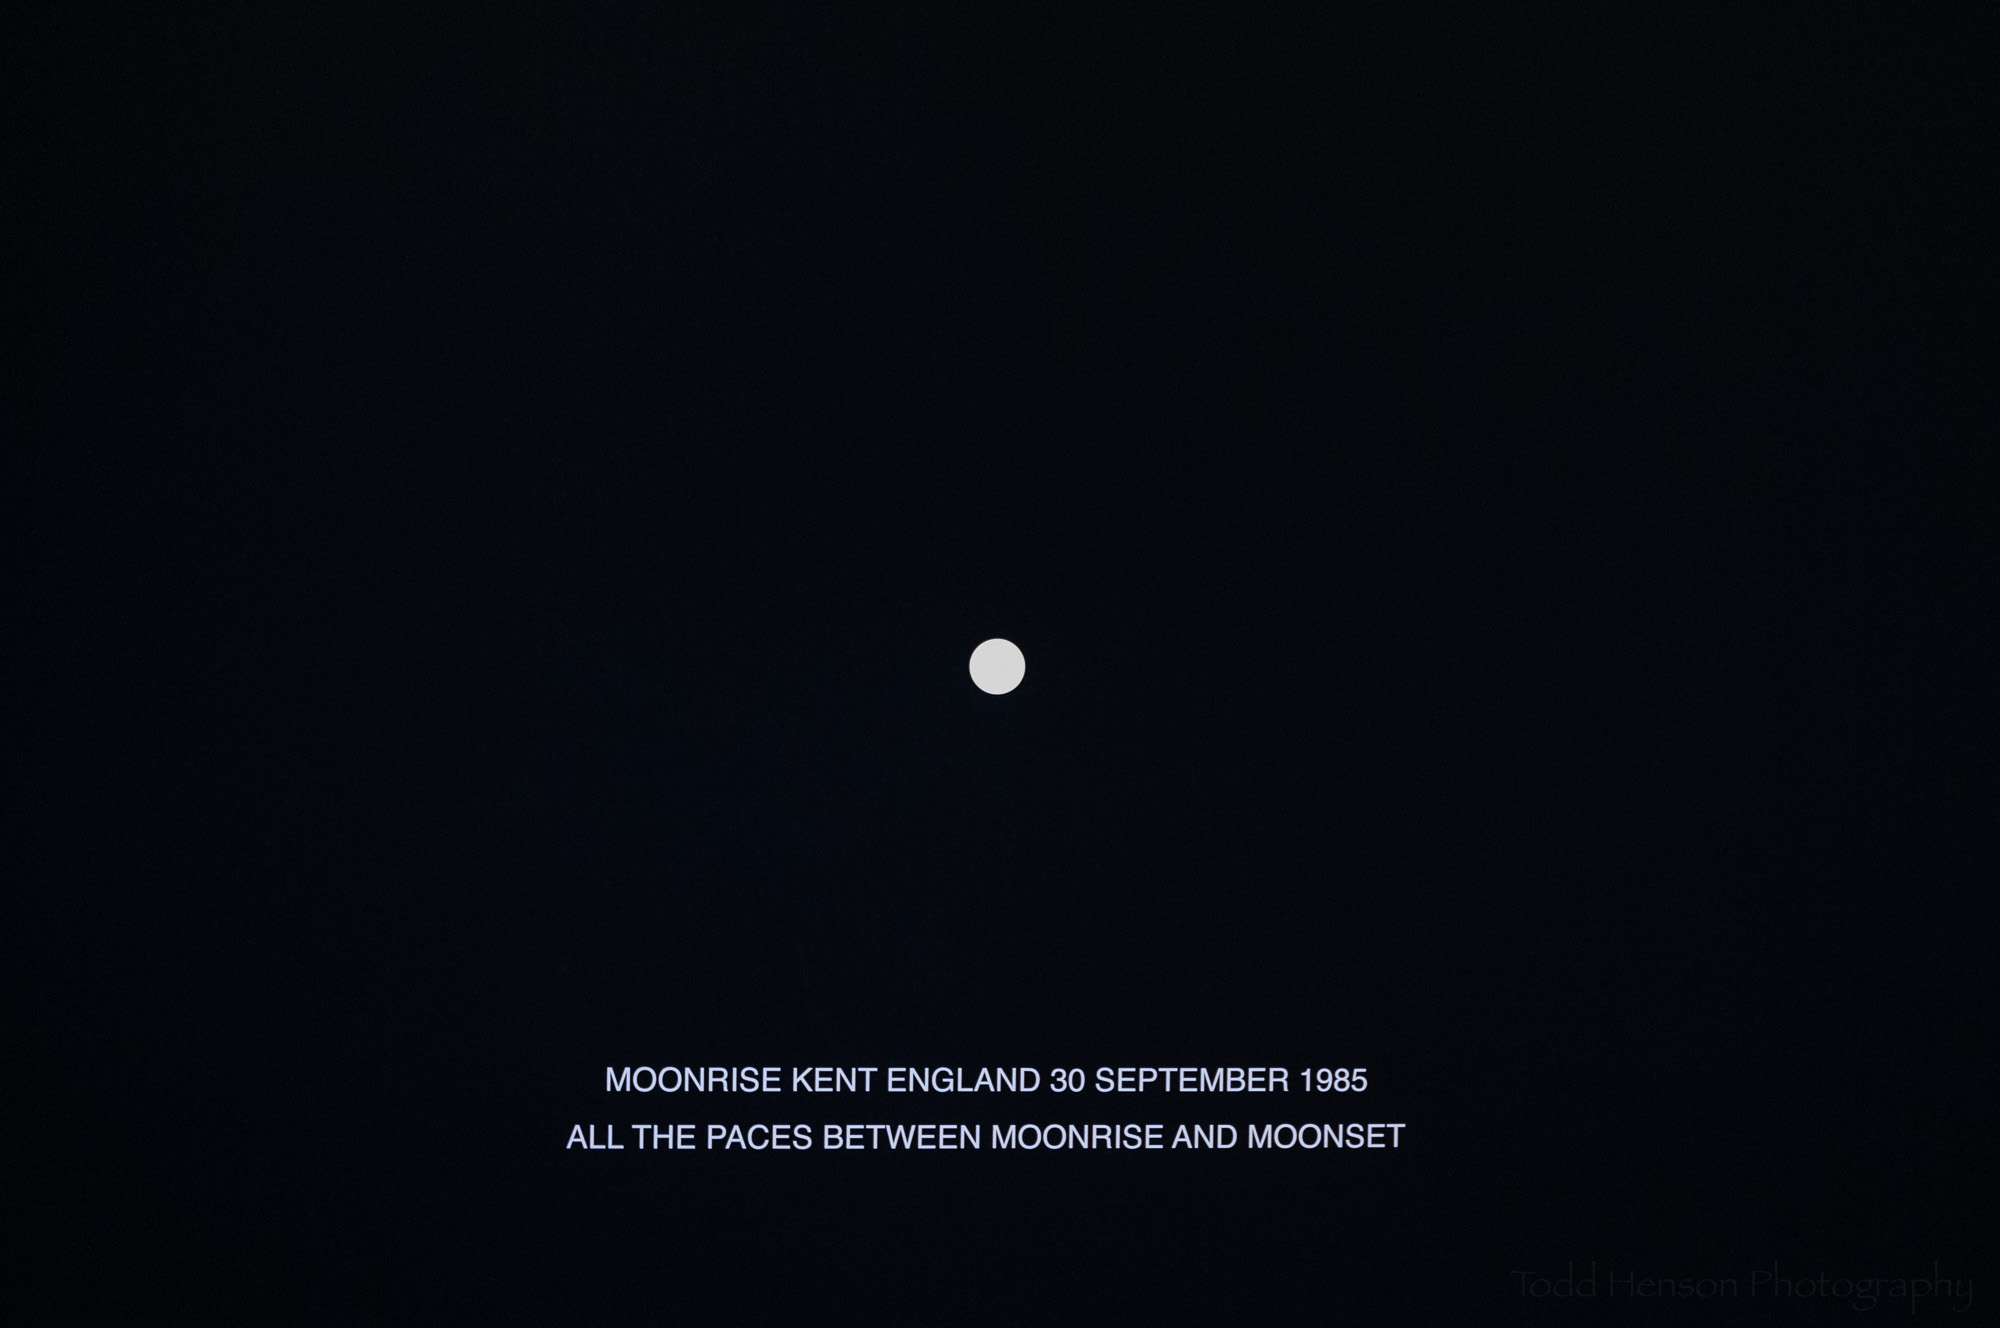 Moonrise Kent England, 30 September 1985, painting by Hamish Fulton in the Smithsonian Hirshhorn Museum